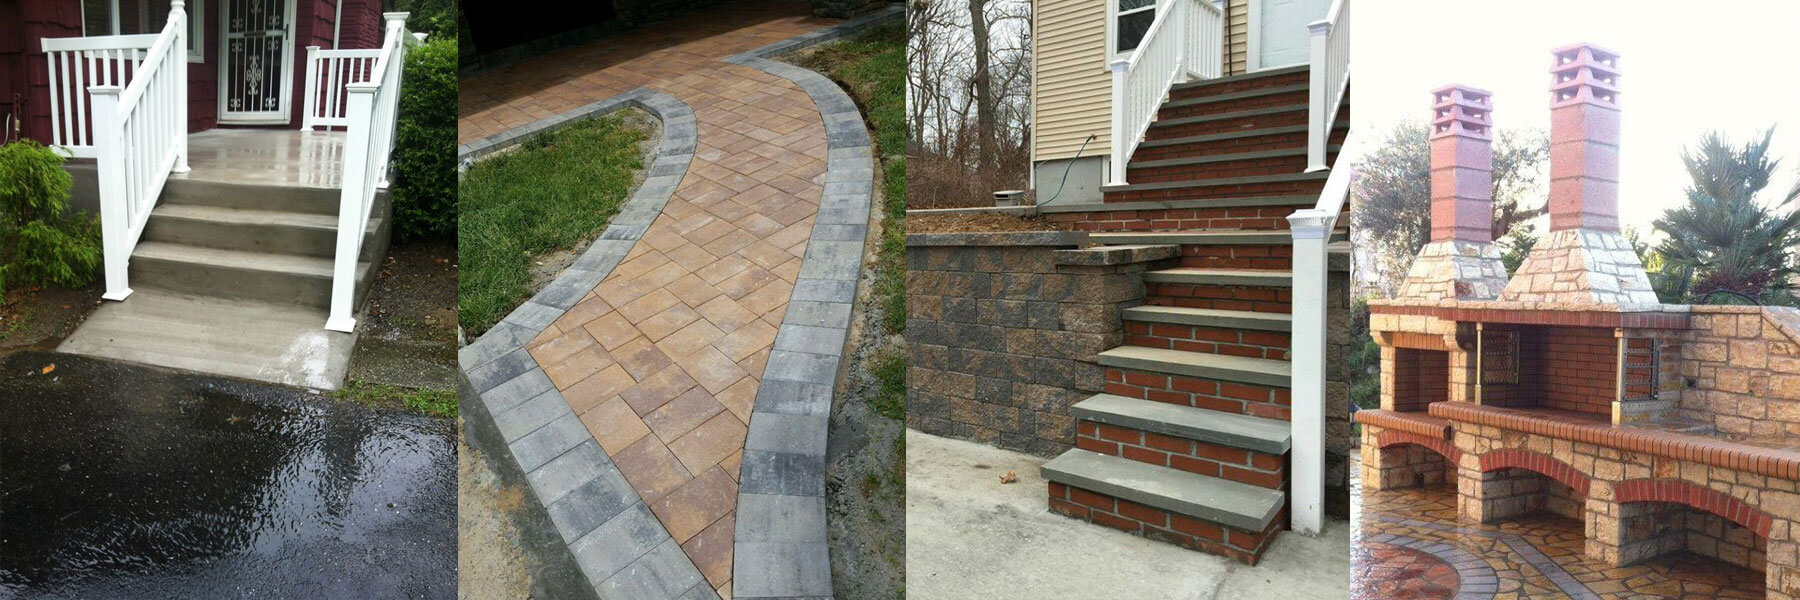 Masonry Repair Long Island